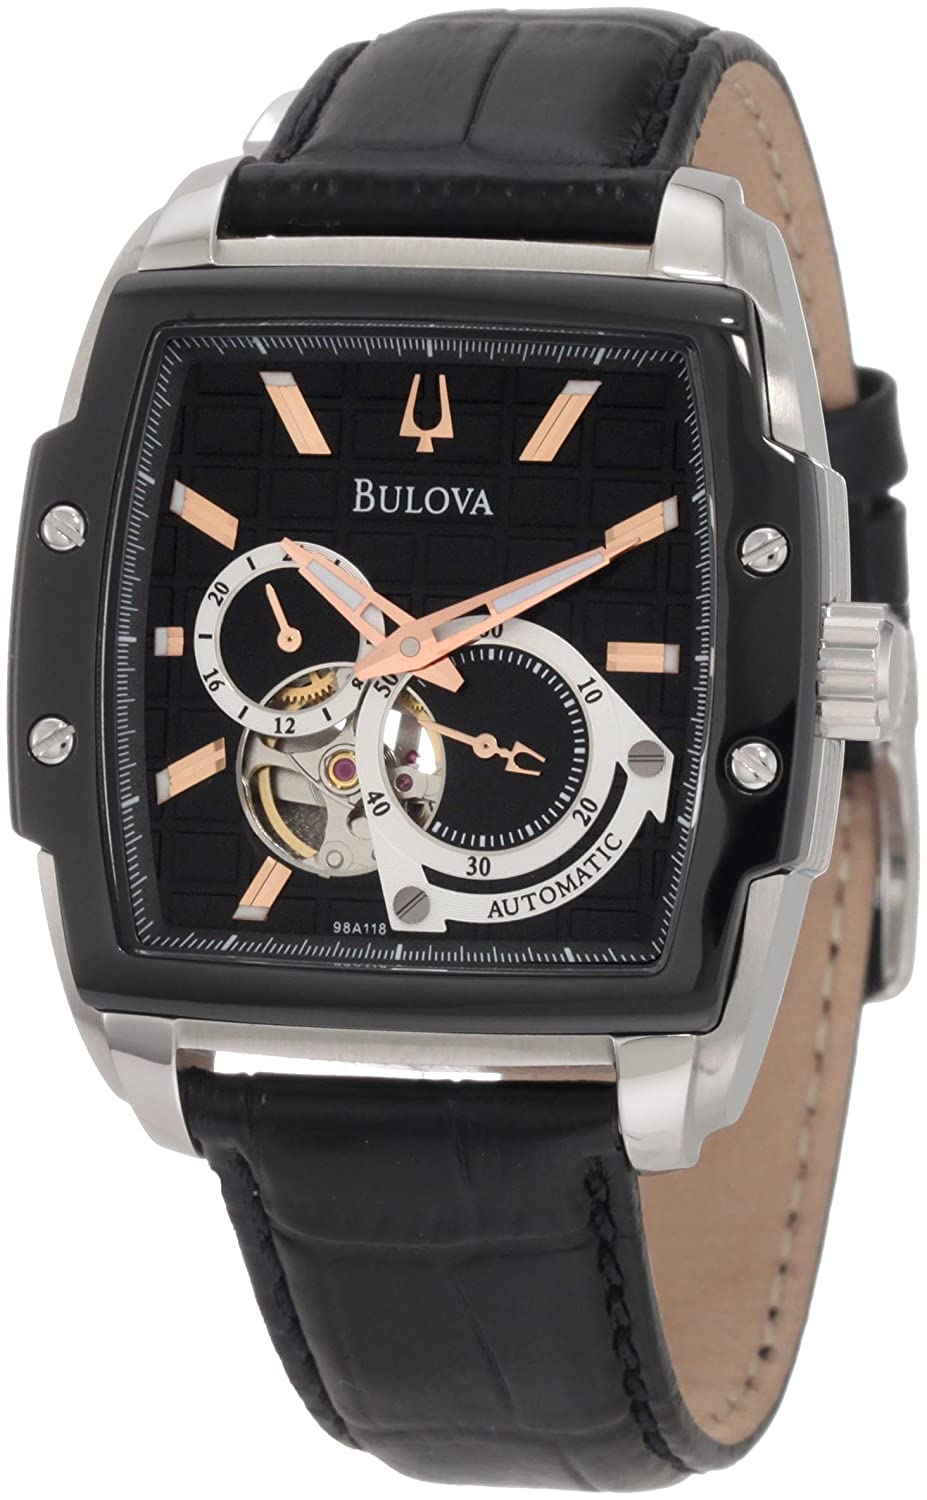 him hugs gift bulova a his wrist holiday idea watches watch for that longmont gifts curv curved guide chronograph